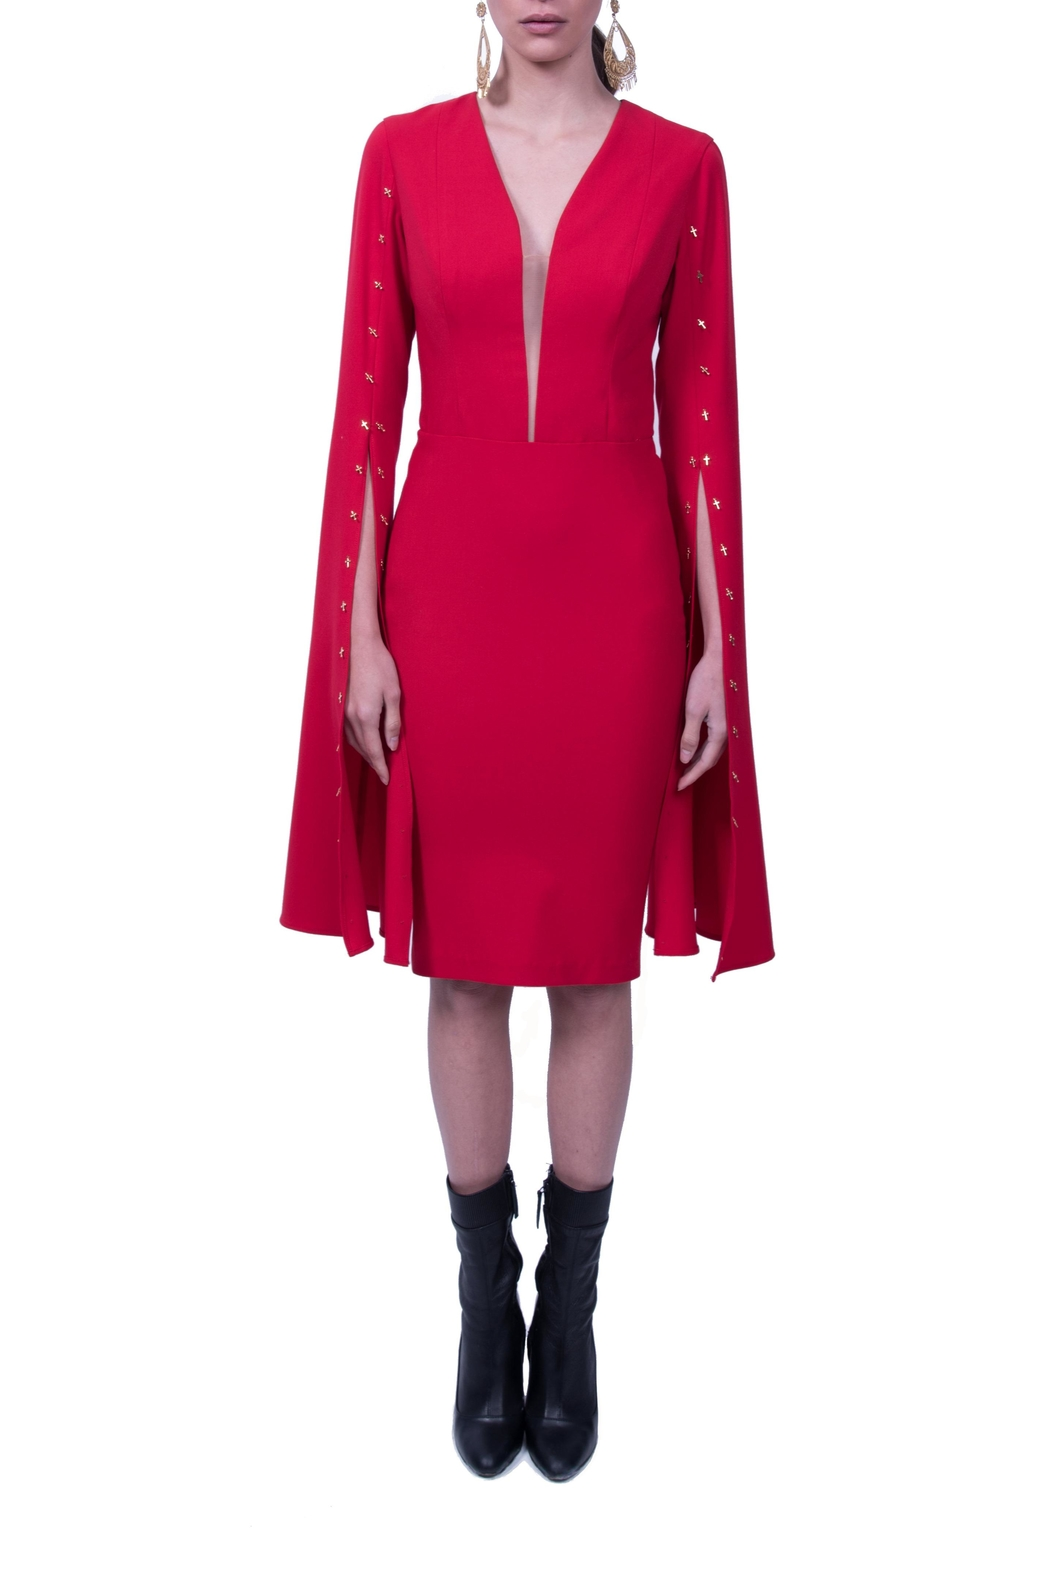 4f0bf2b6f1f Viesca y Viesca Long Sleeve Dress from Mexico — Shoptiques